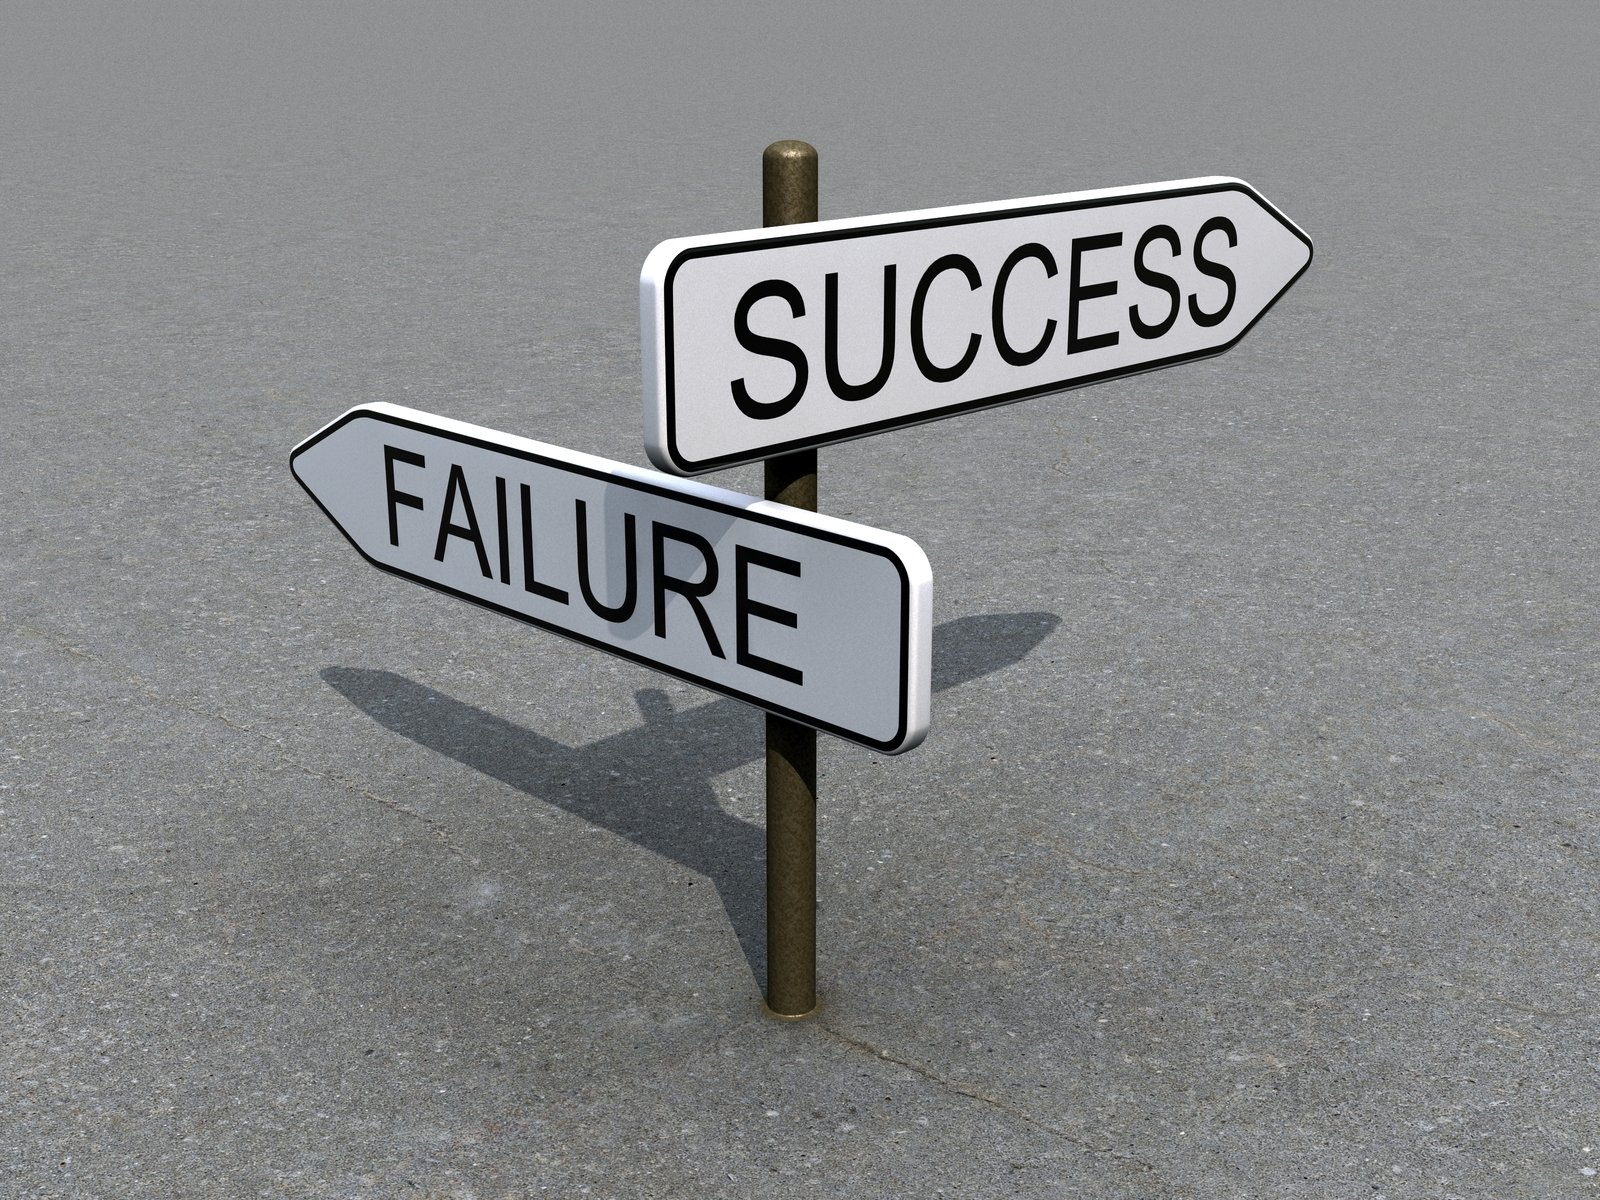 Sign of success and failure